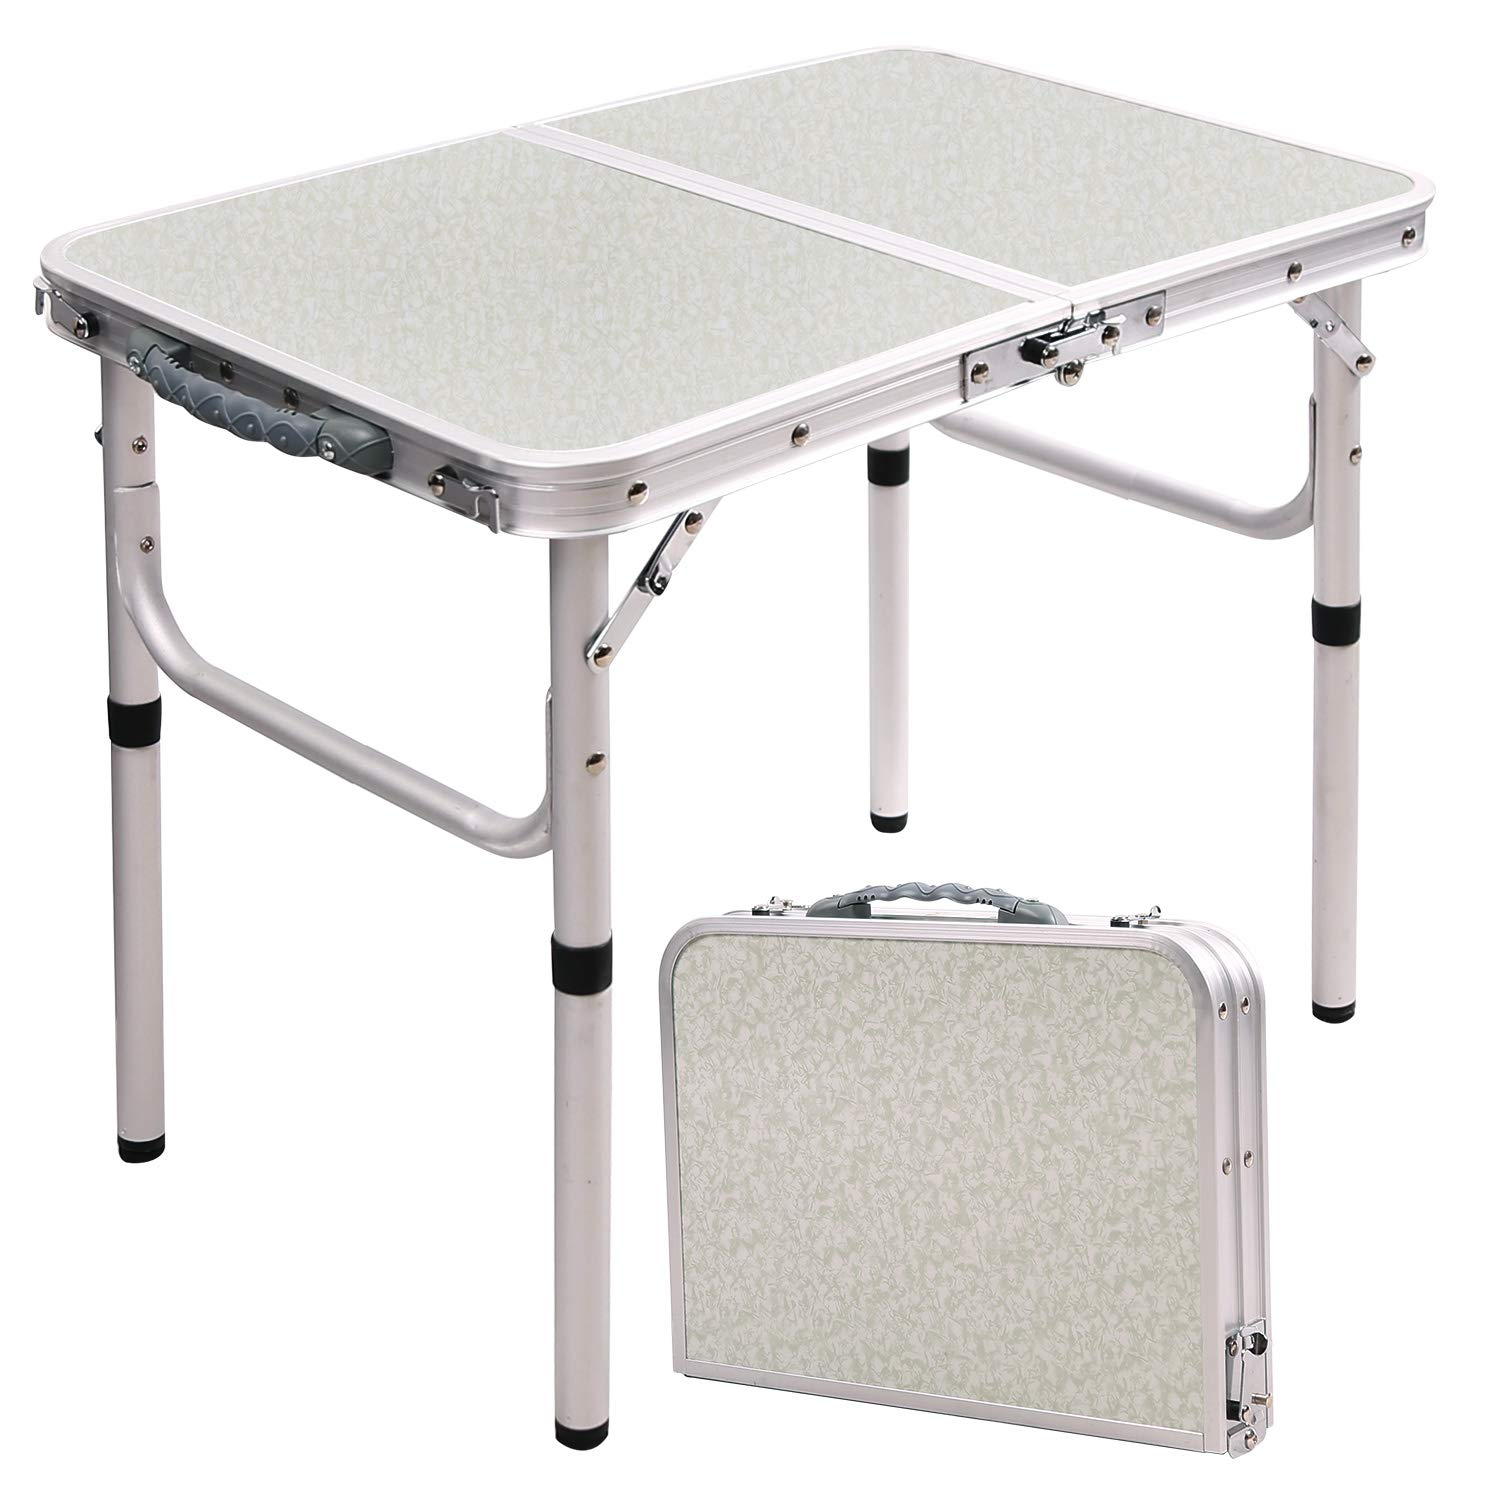 RedSwing Small Folding Table Adjustable Height 23.6 x15.7 x10.2 19 , Lightweight Aluminum Camping Table, 2 Feet